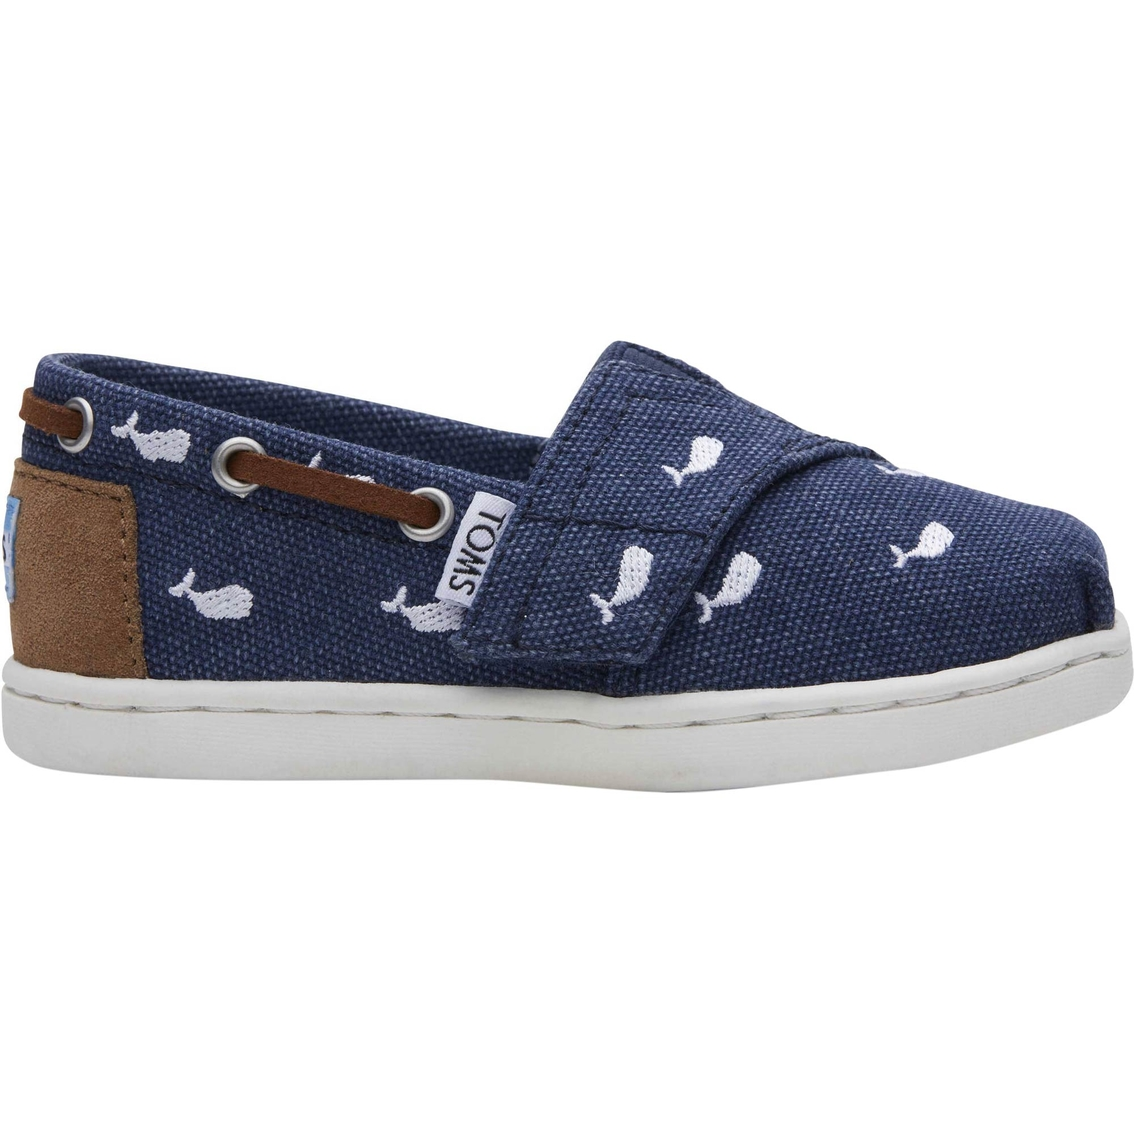 db38d64fdbc Toms Whale Embroidery Tiny Bimini Boat Shoes